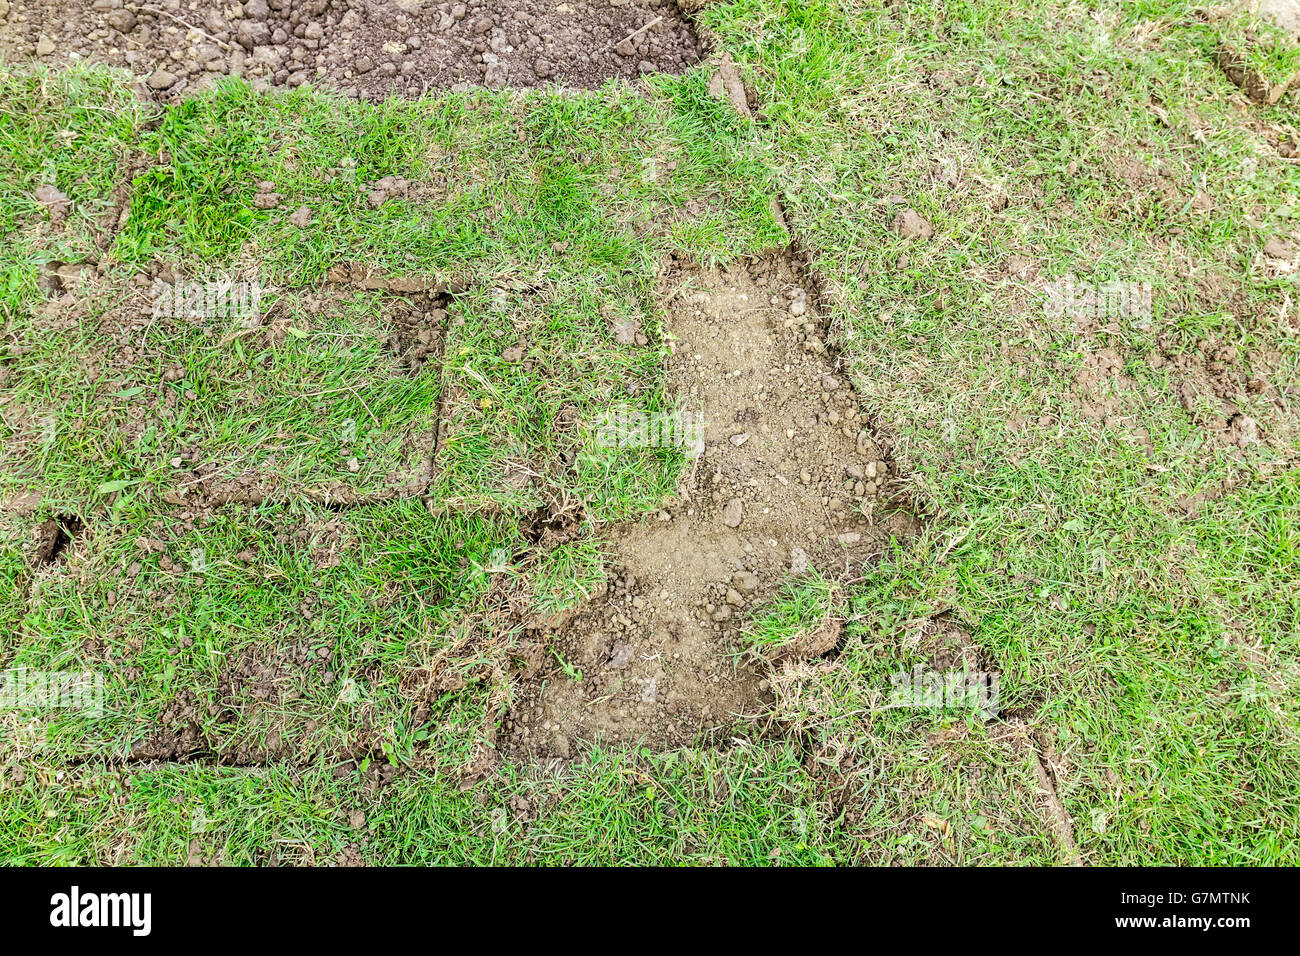 Unrolling grass, applying turf rolls for a new lawn, work in progress. - Stock Image